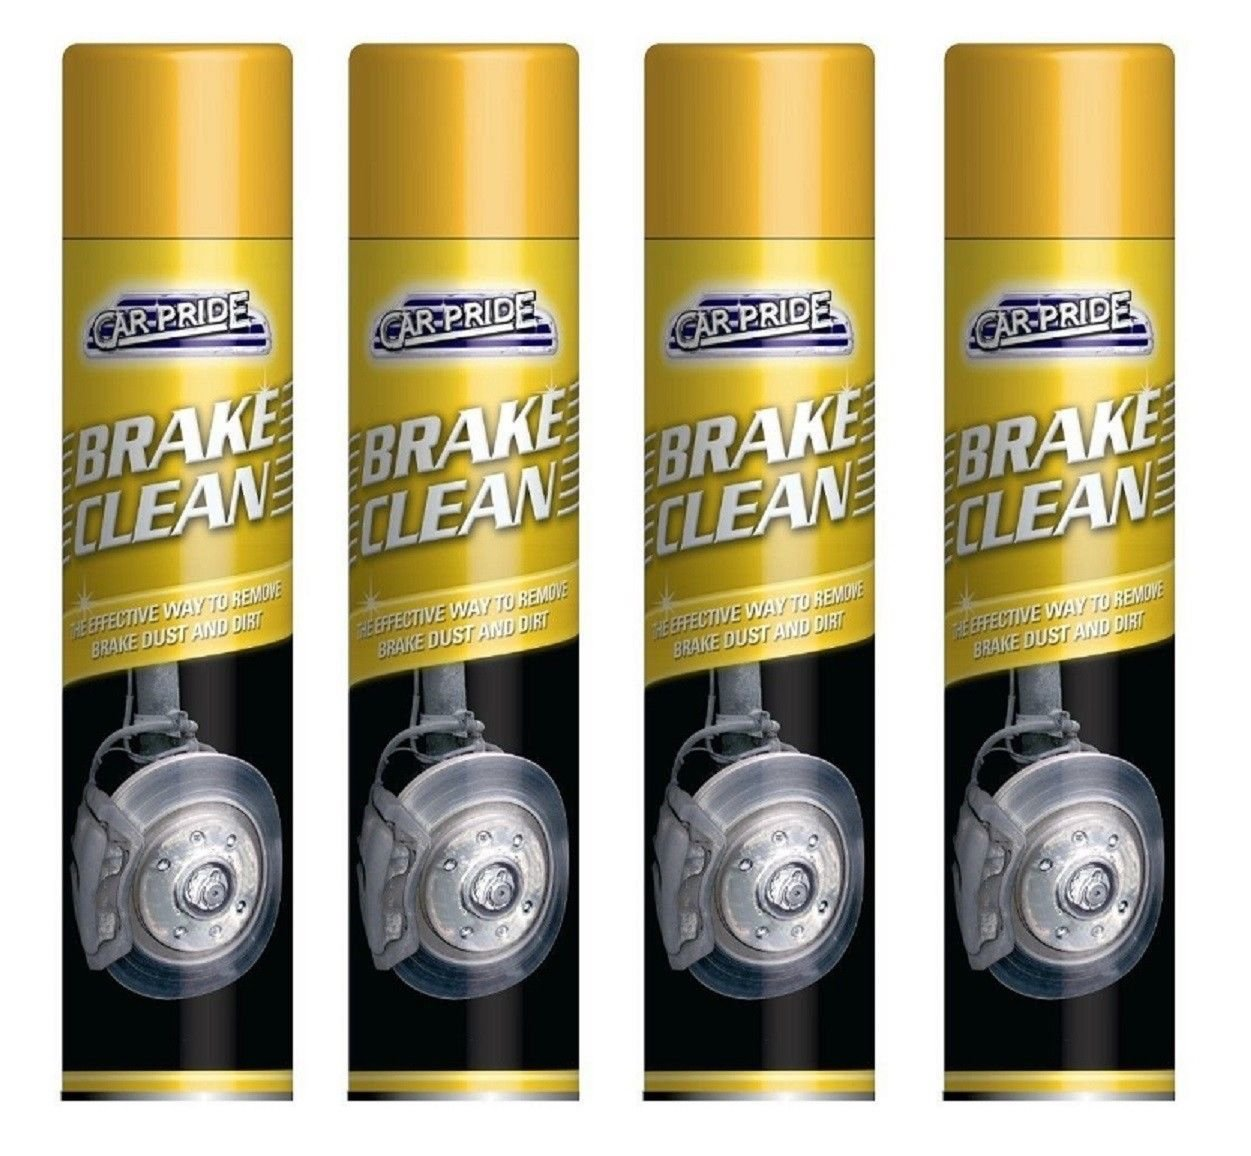 Scotvision® 4 x Carpride Brake Cleaner Spray 300ml Can Effective To Remove Break Dust & Dirt Scotvision®